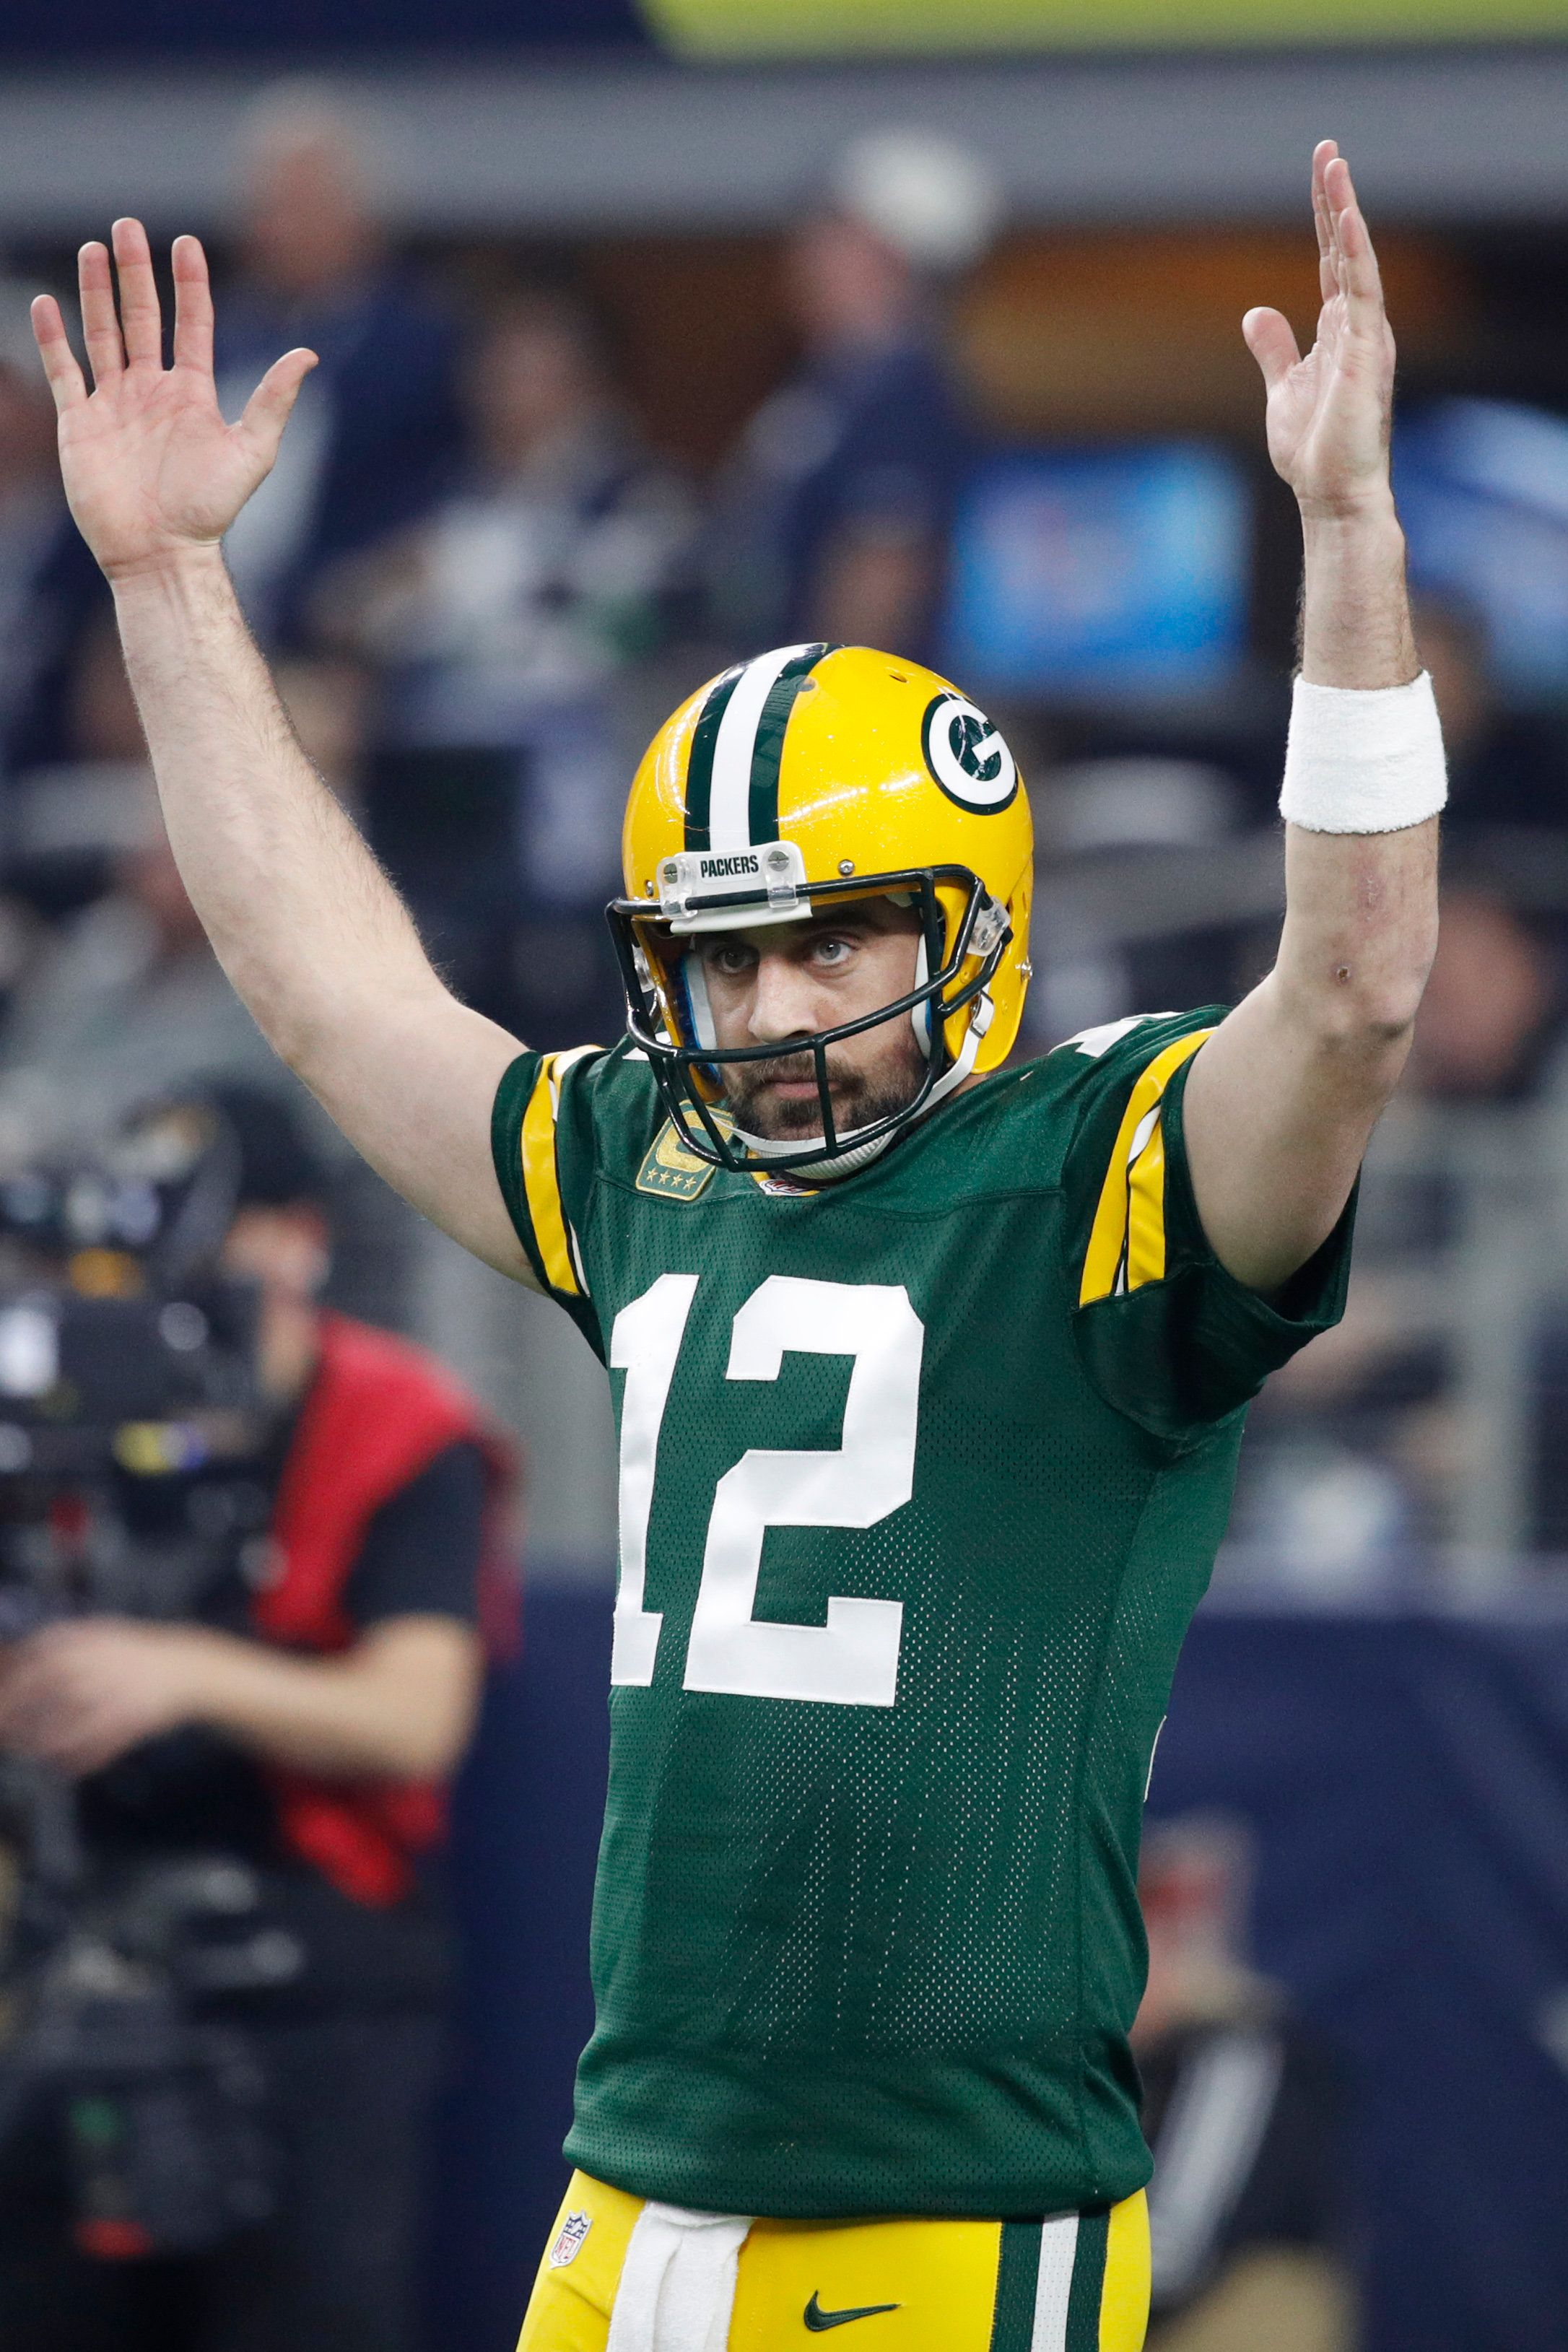 ARLINGTON, TX - JANUARY 15: Aaron Rodgers #12 of the Green Bay Packers reacts after a touchdown during the NFC Divisional Playoff game against the Dallas Cowboys at AT&T Stadium on January 15, 2017 in Arlington, Texas. The Packers defeated the Cowboys 34-31. (Photo by Joe Robbins/Getty Images)